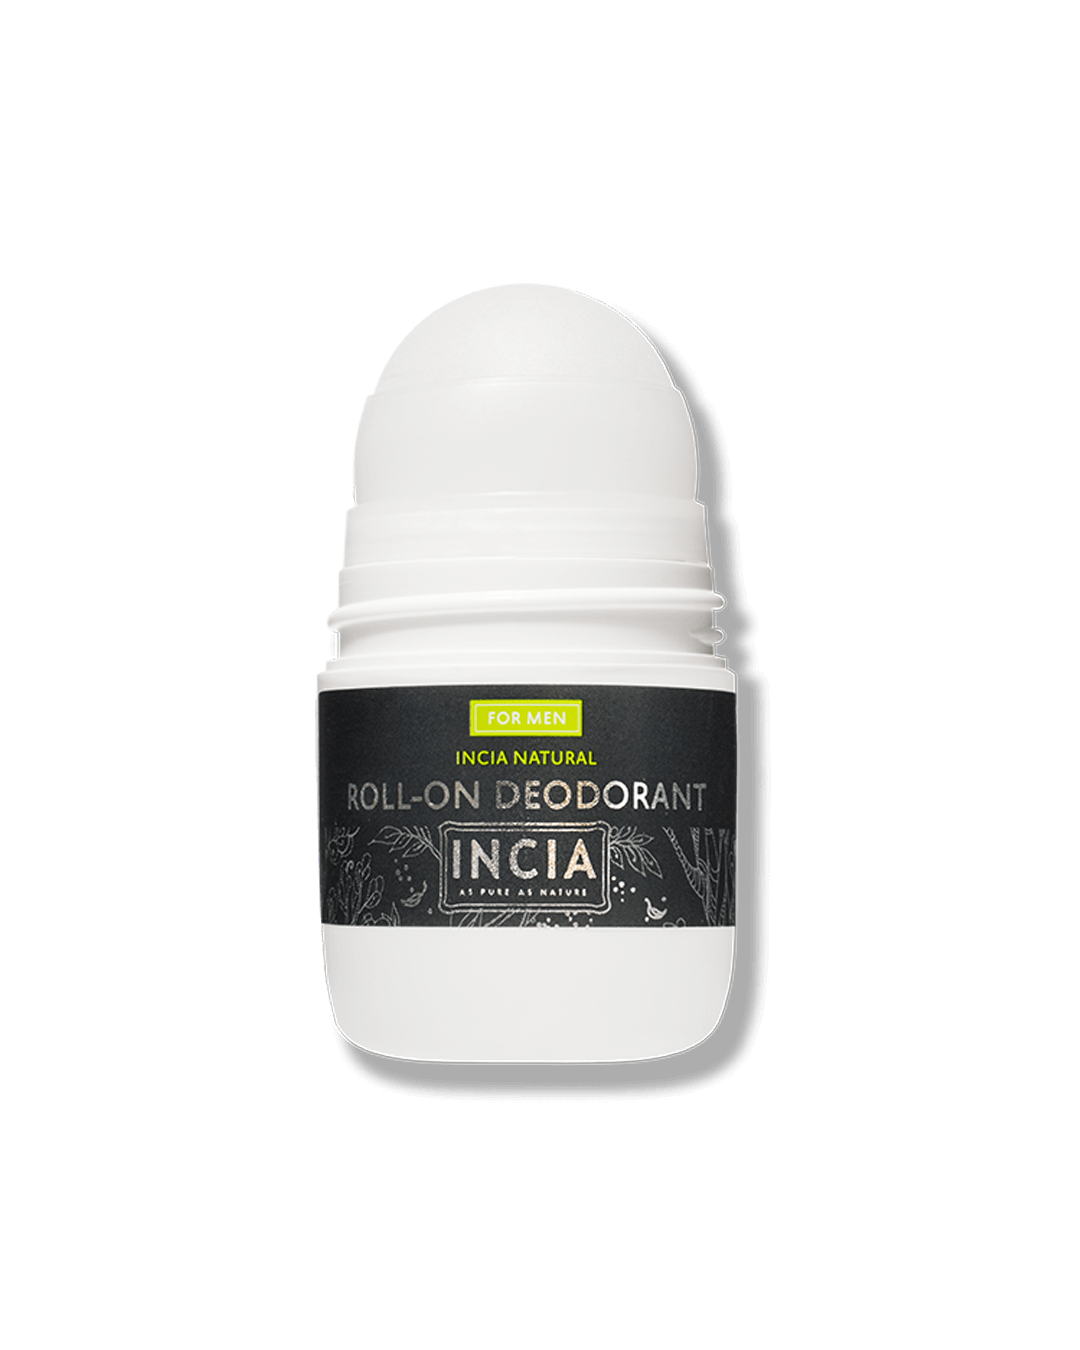 Natural Roll-On Deodorant For Men